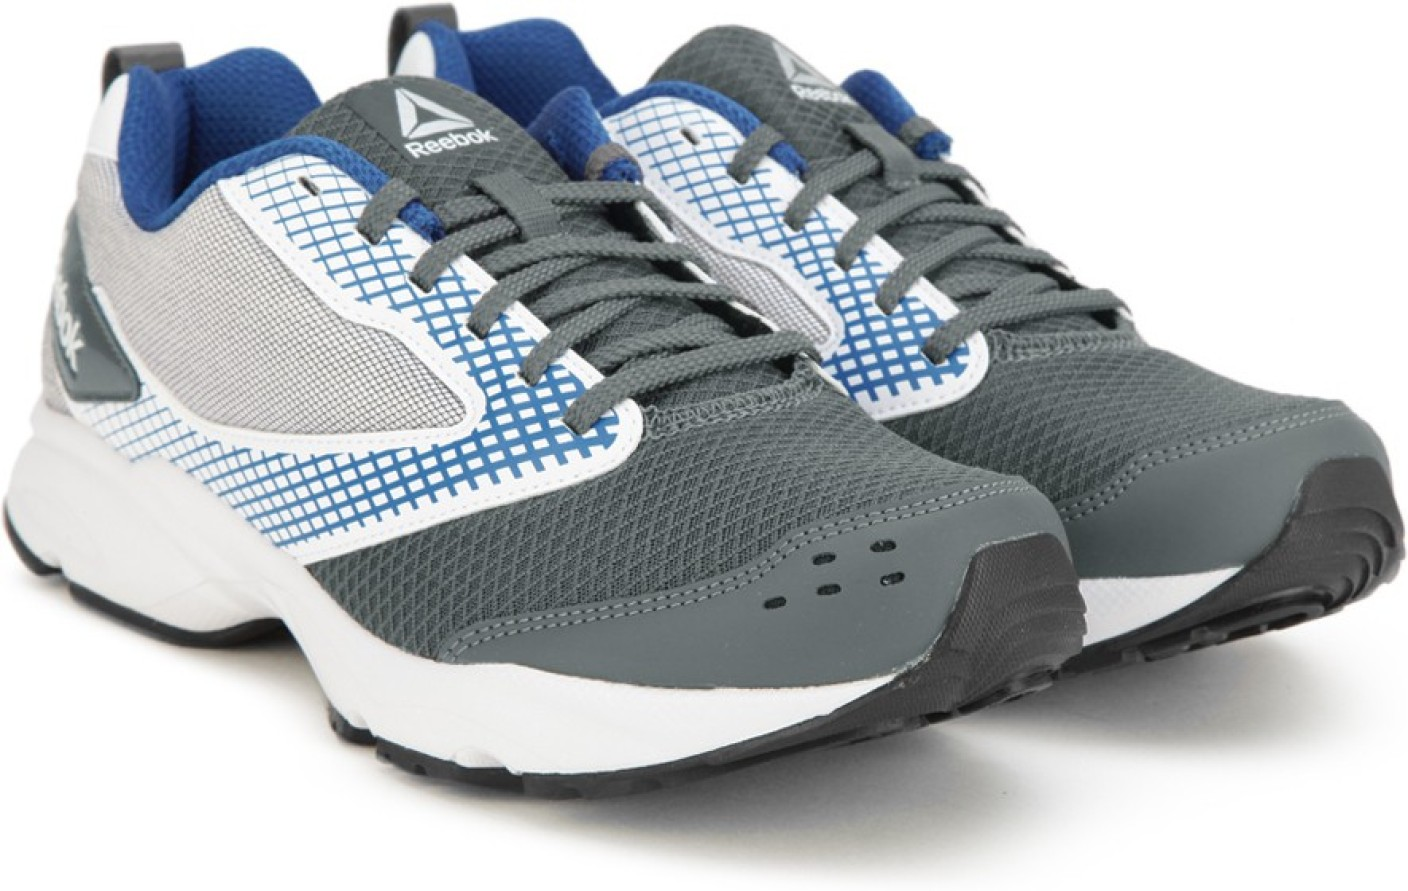 reebok zest running shoes for men buy ash greywhtblue